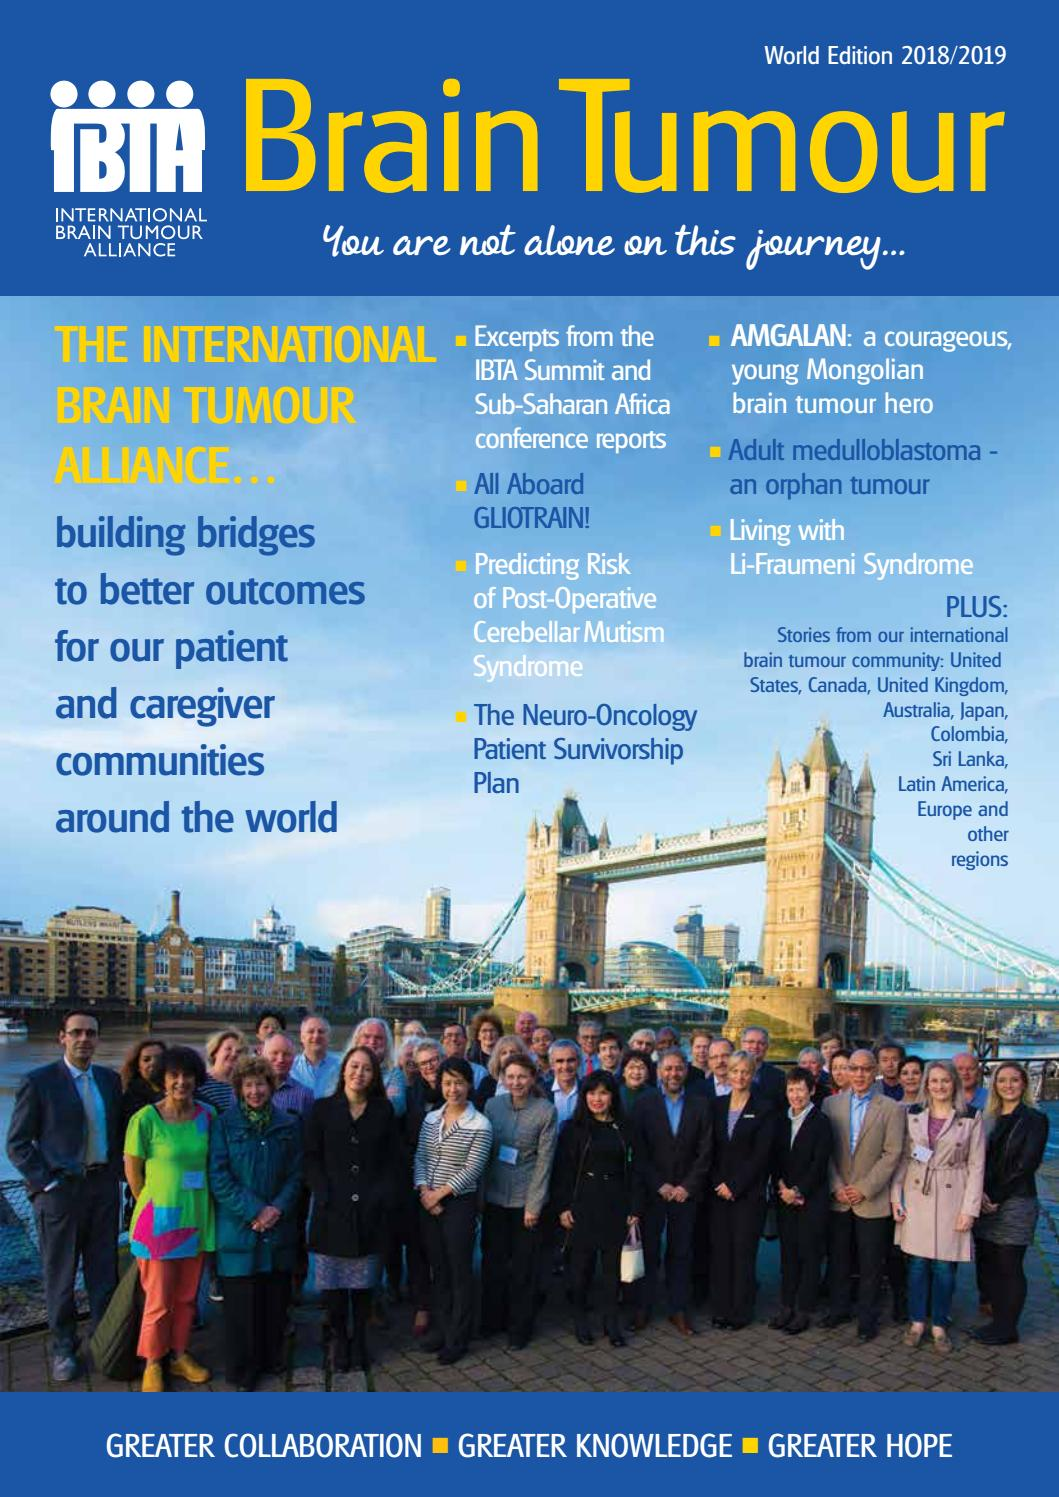 Brain Tumour Magazine: World Edition 2018/2019 by The